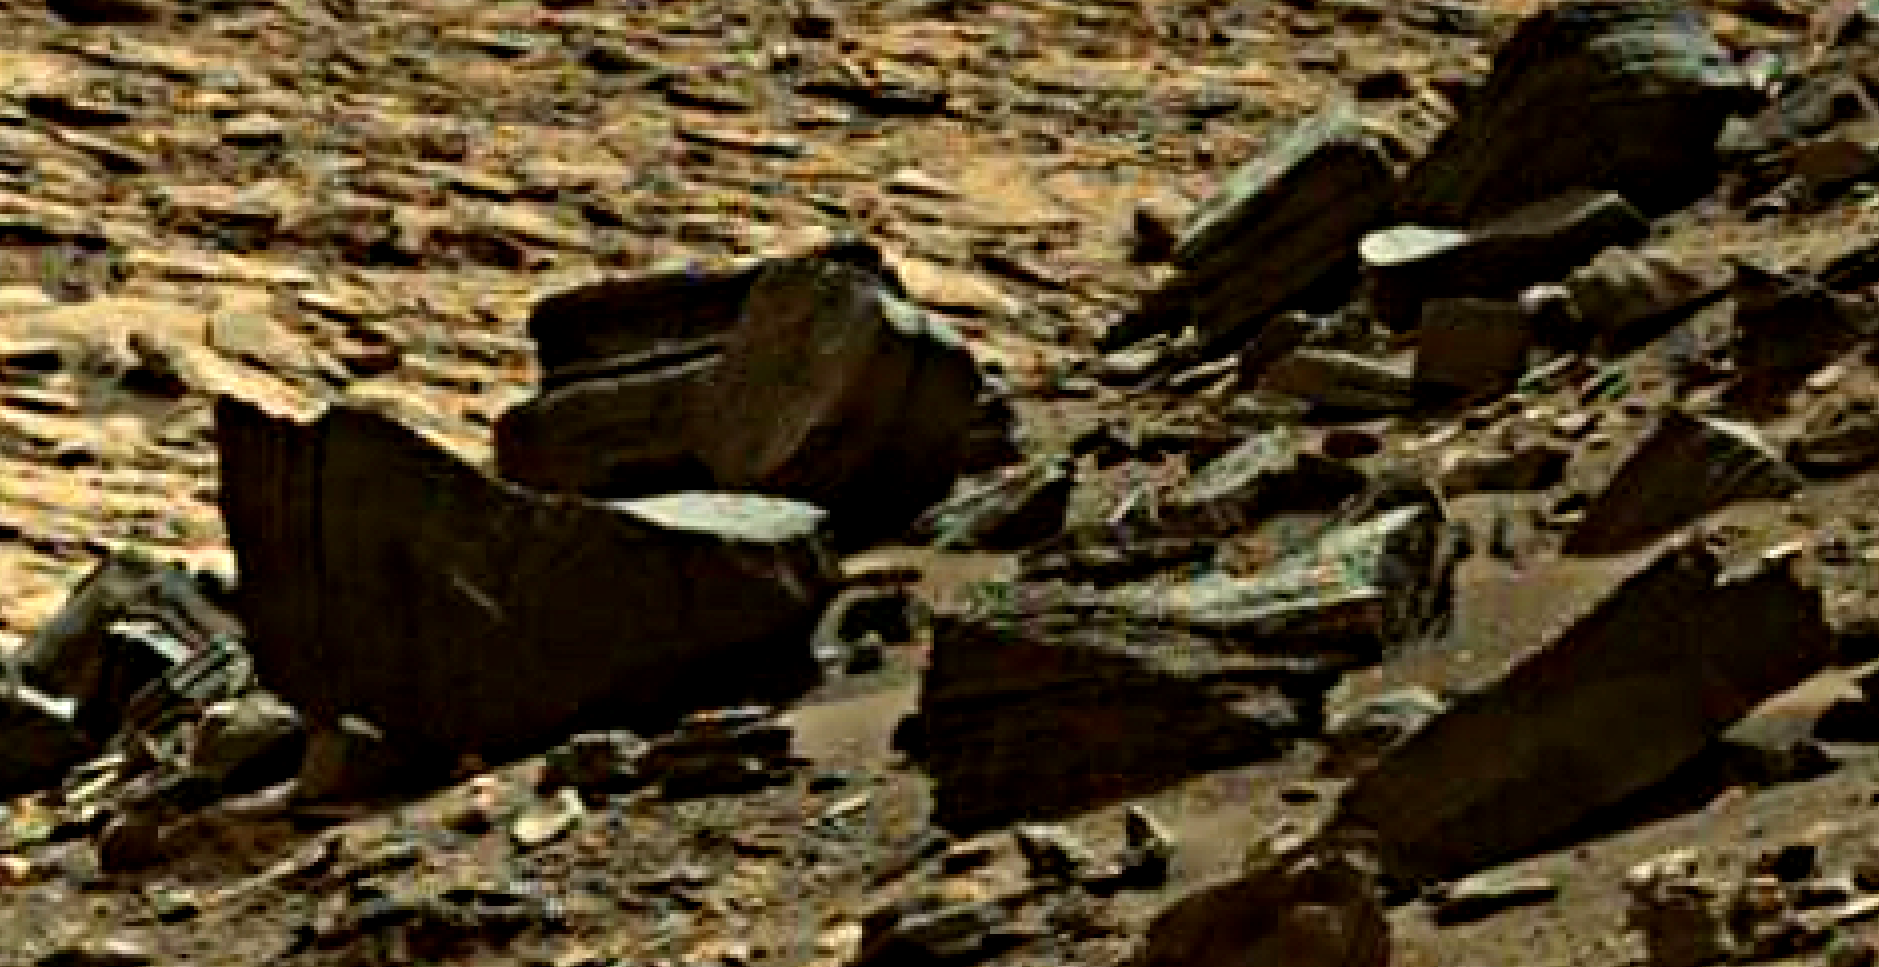 mars-sol-1452-anomaly-artifacts-2-was-life-on-mars